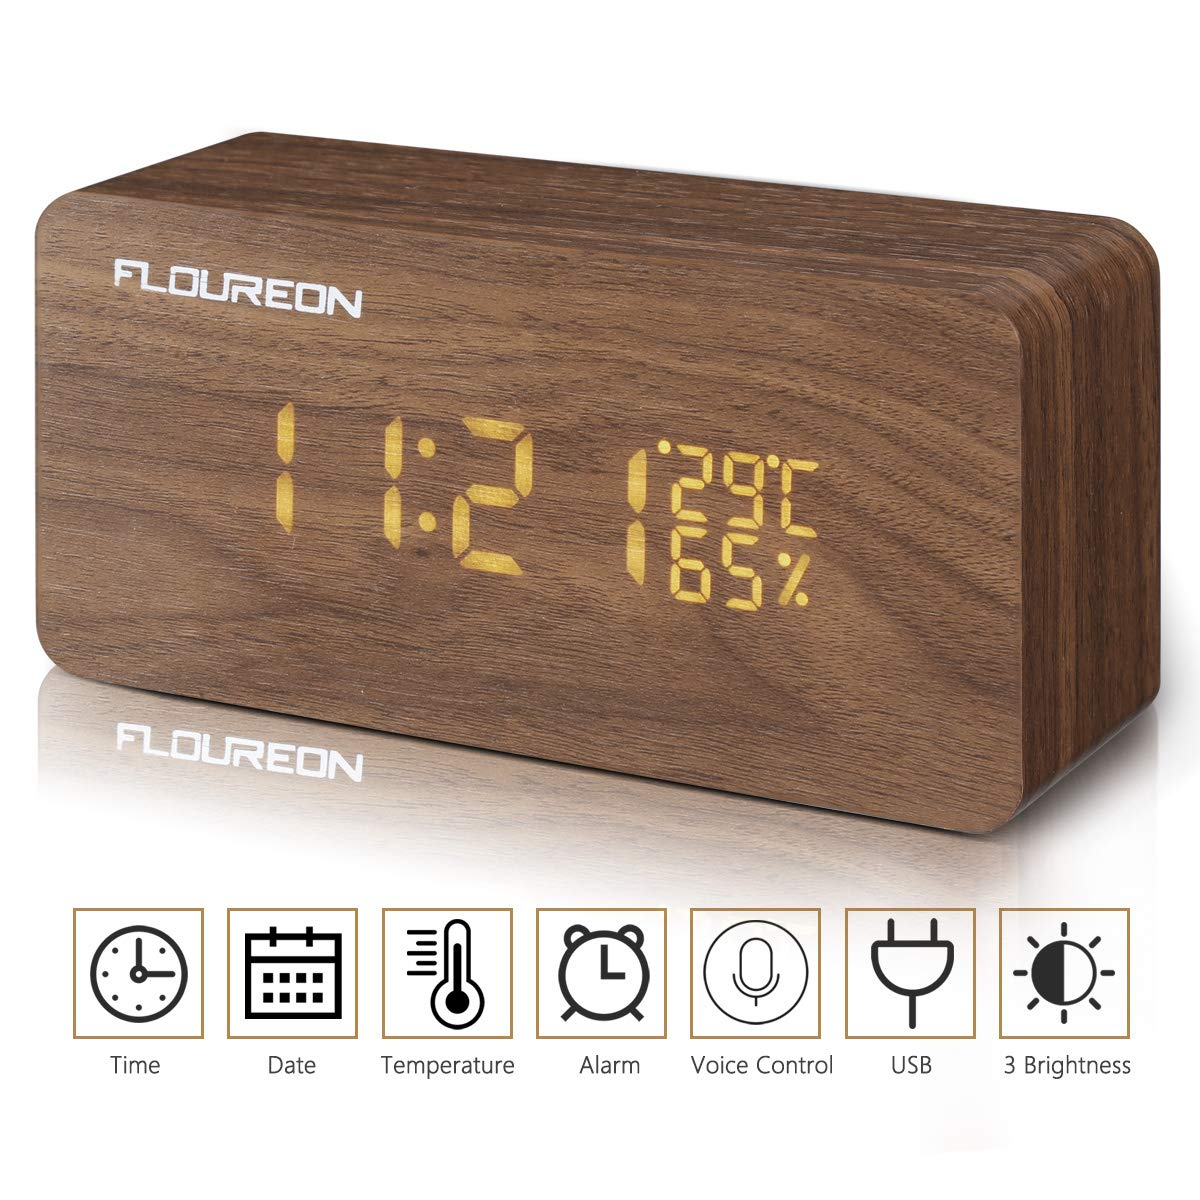 FLOUREON Wooden Alarm Clock LED Desk bedside Digital Clock Calendar/Time/Temperature/Humidity Displaying with 3 Brightness Adjustable and 3 Set of Alarm, Dual Power, Voice Control (Brown)